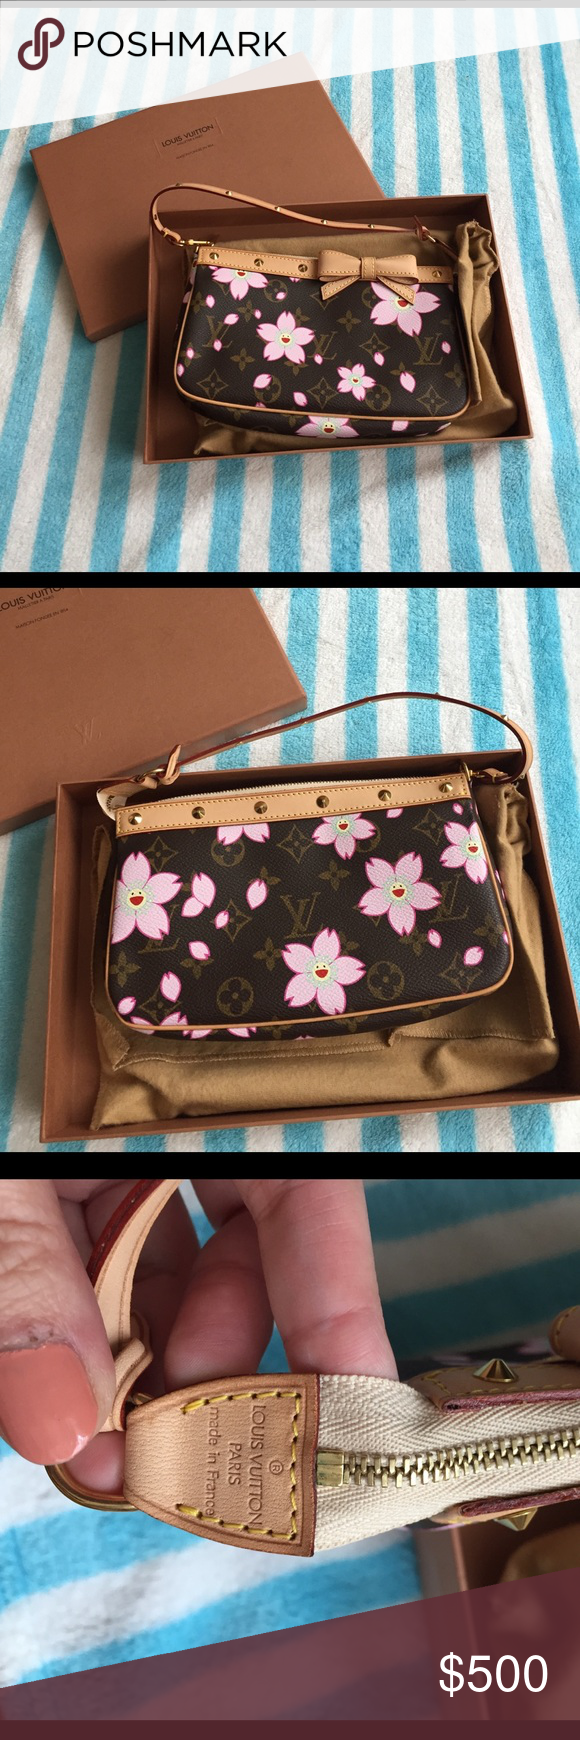 Louis Vuitton cherry blossom limited edition New. Made in France, with original packaging. Louis Vuitton Bags Mini Bags